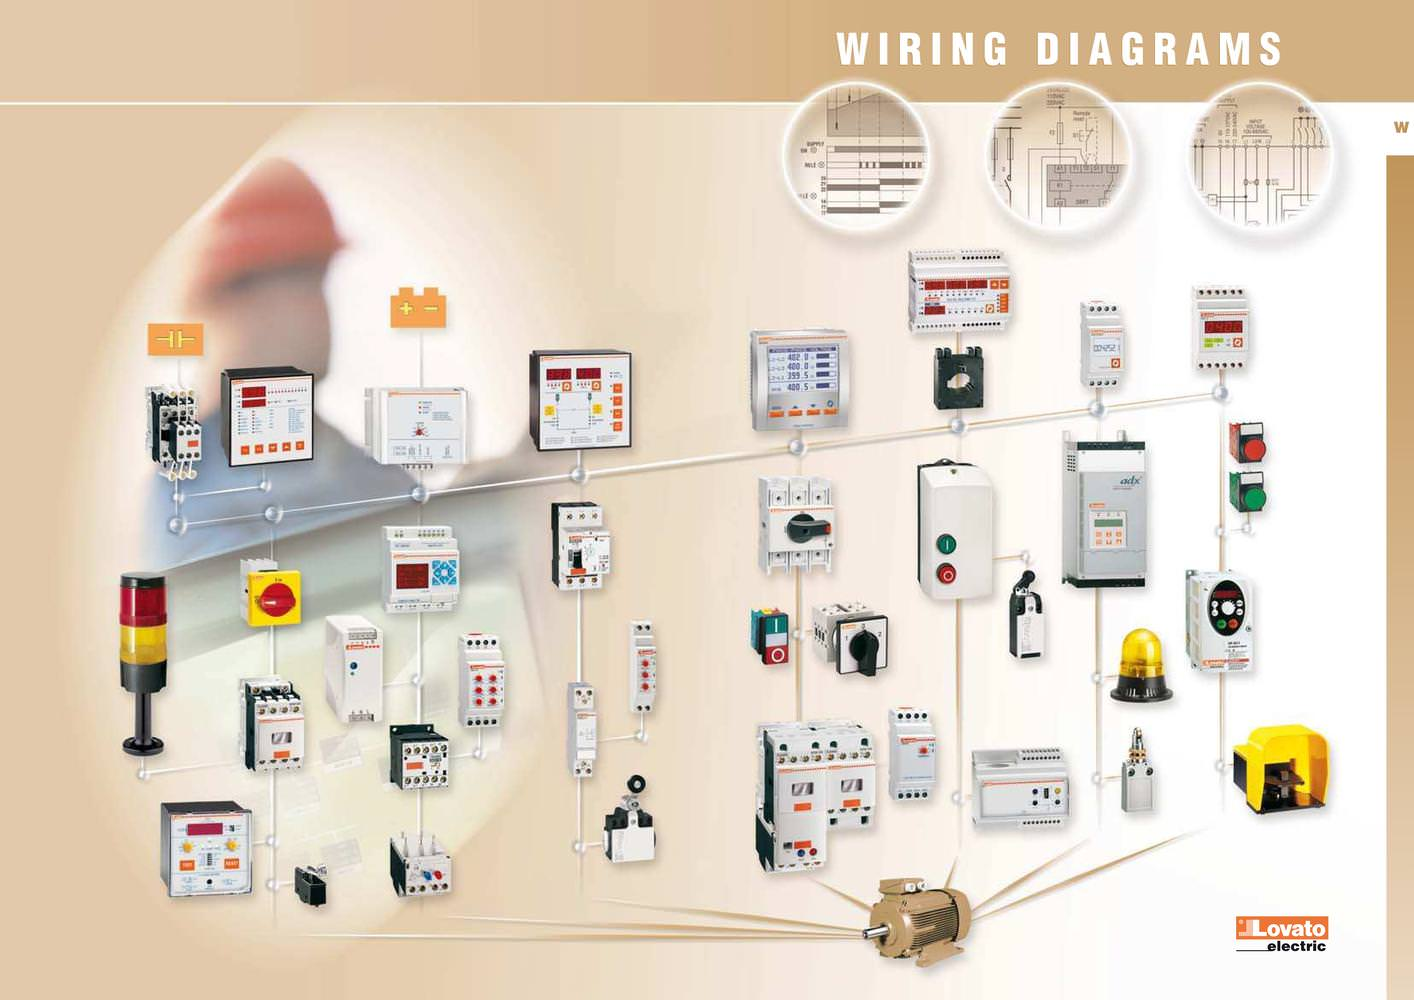 hight resolution of wiring diagrams 1 39 pages